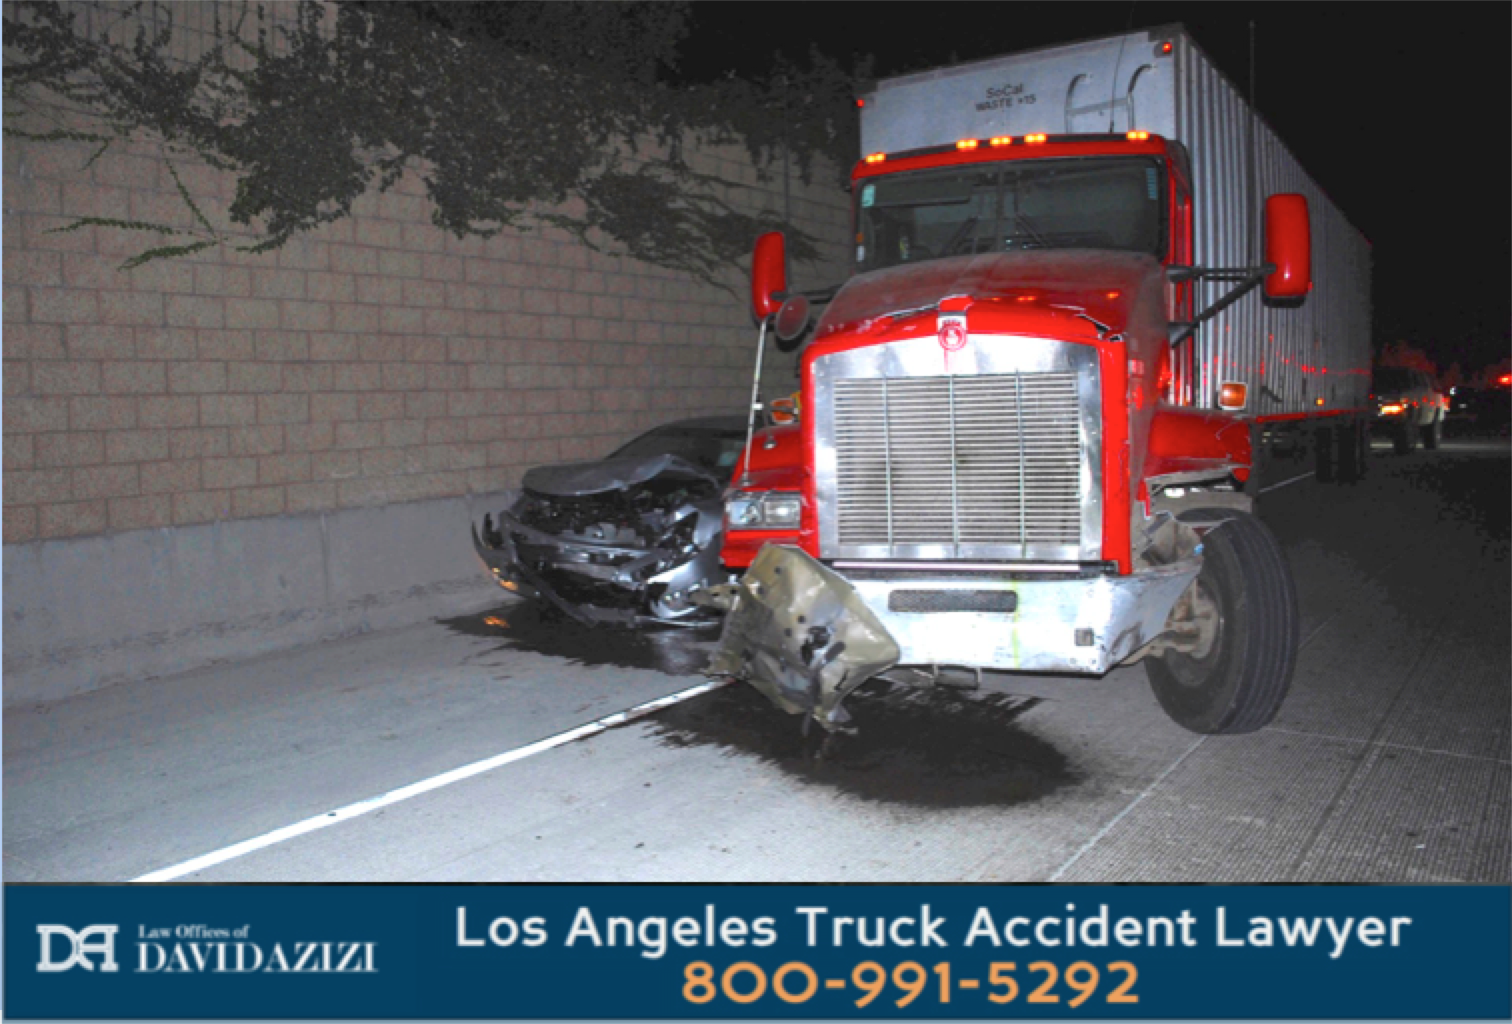 Car Hit and Pinned By Truck - Law Offices of David Azizi